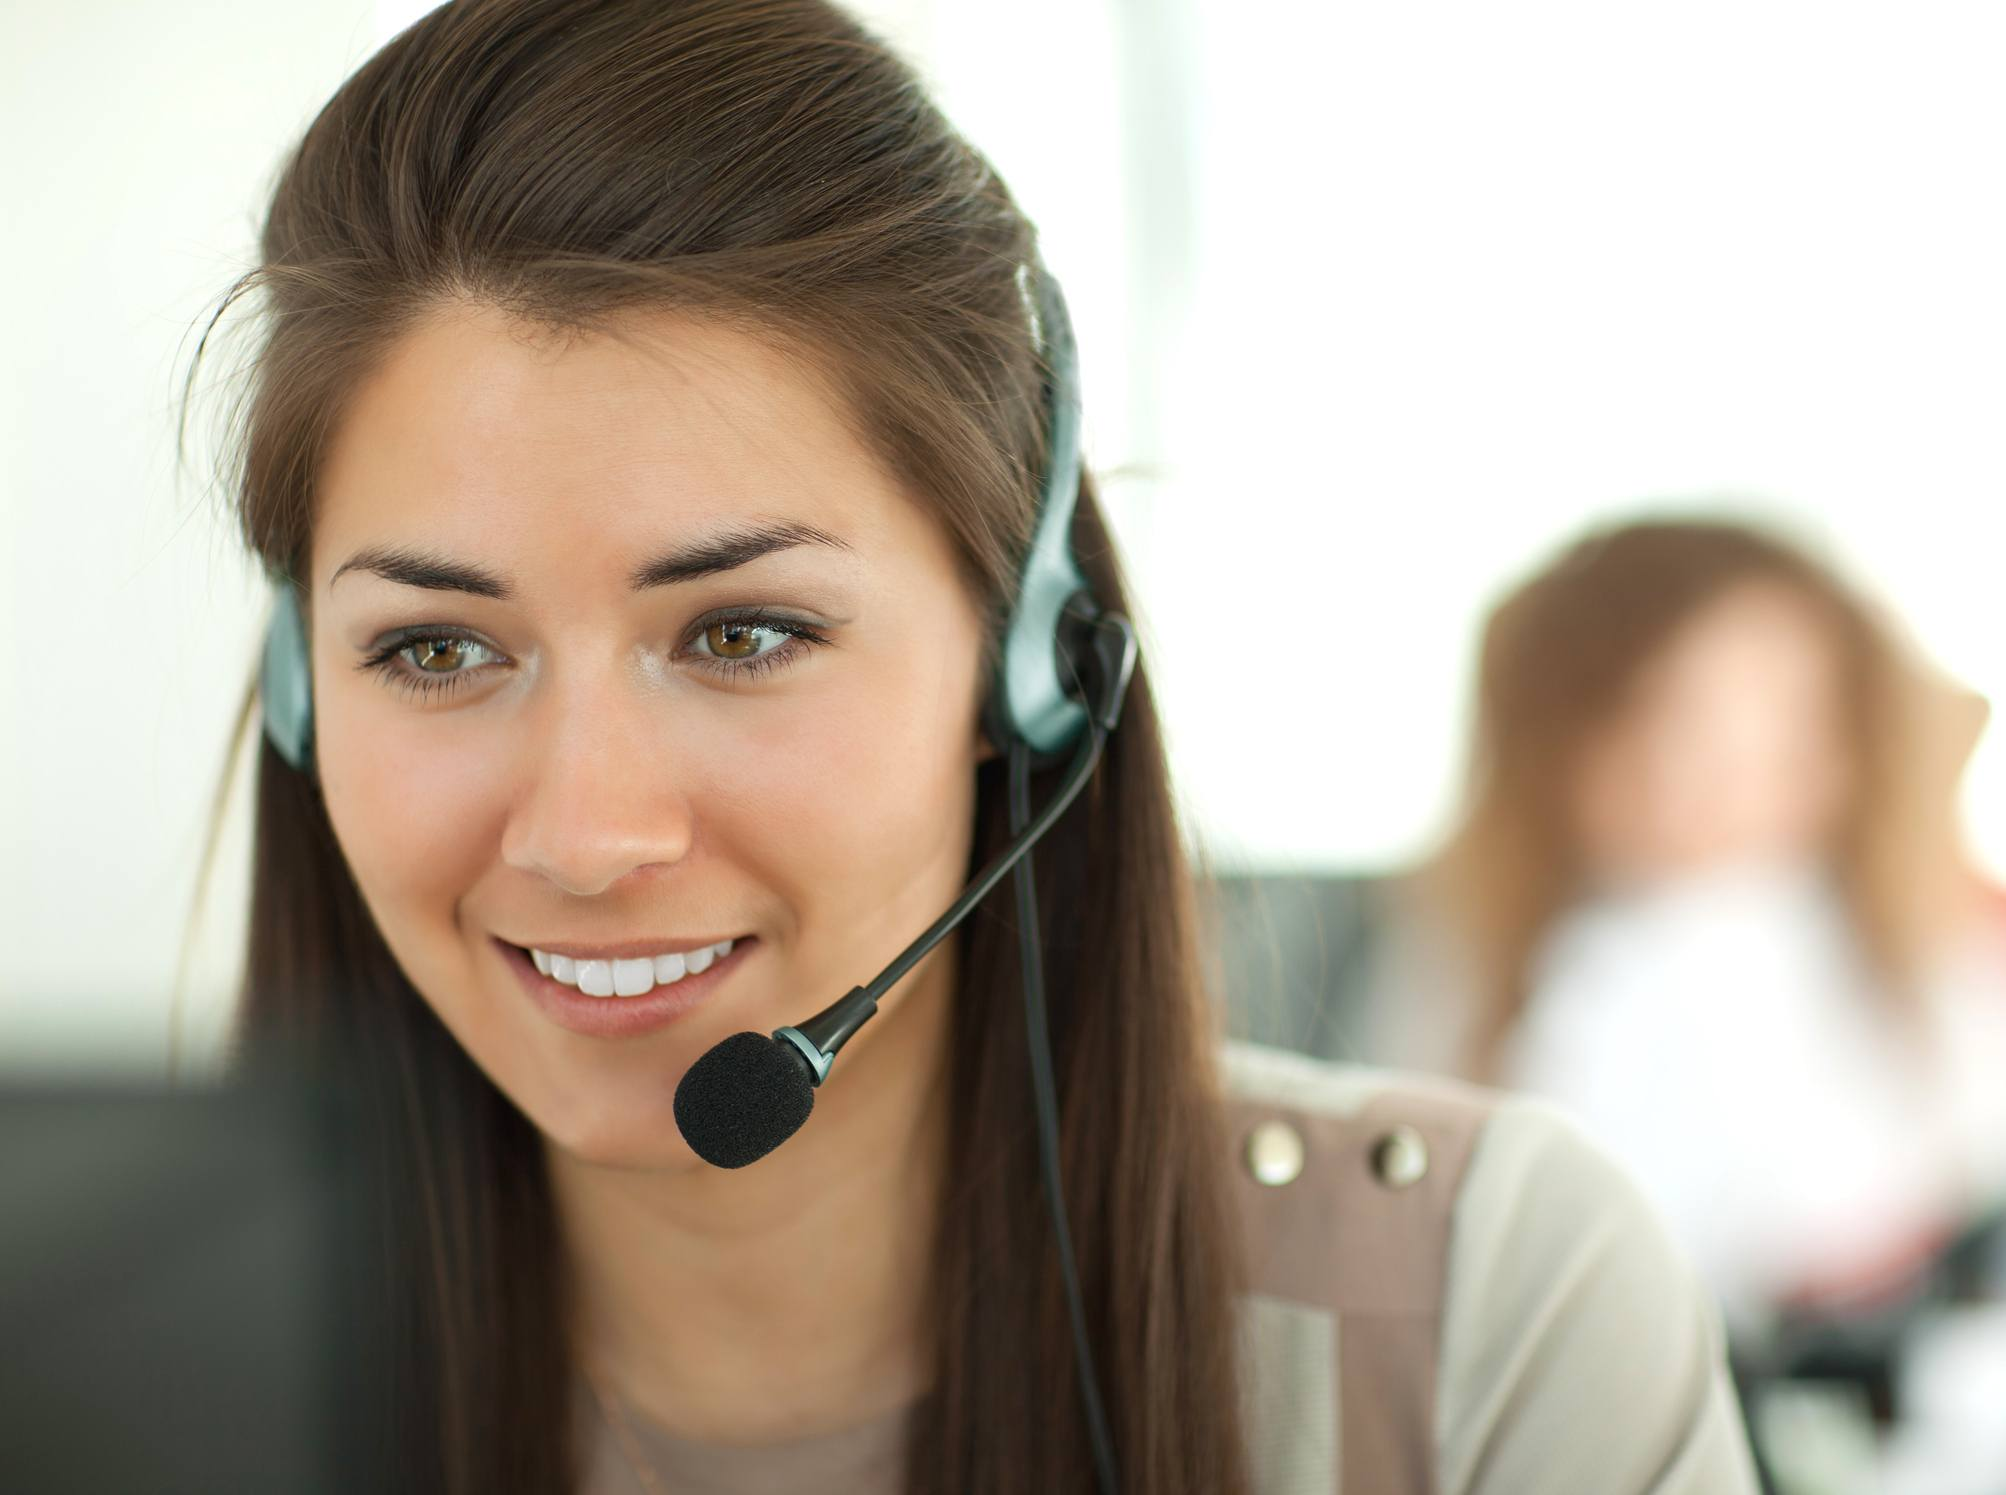 Female customer service operator